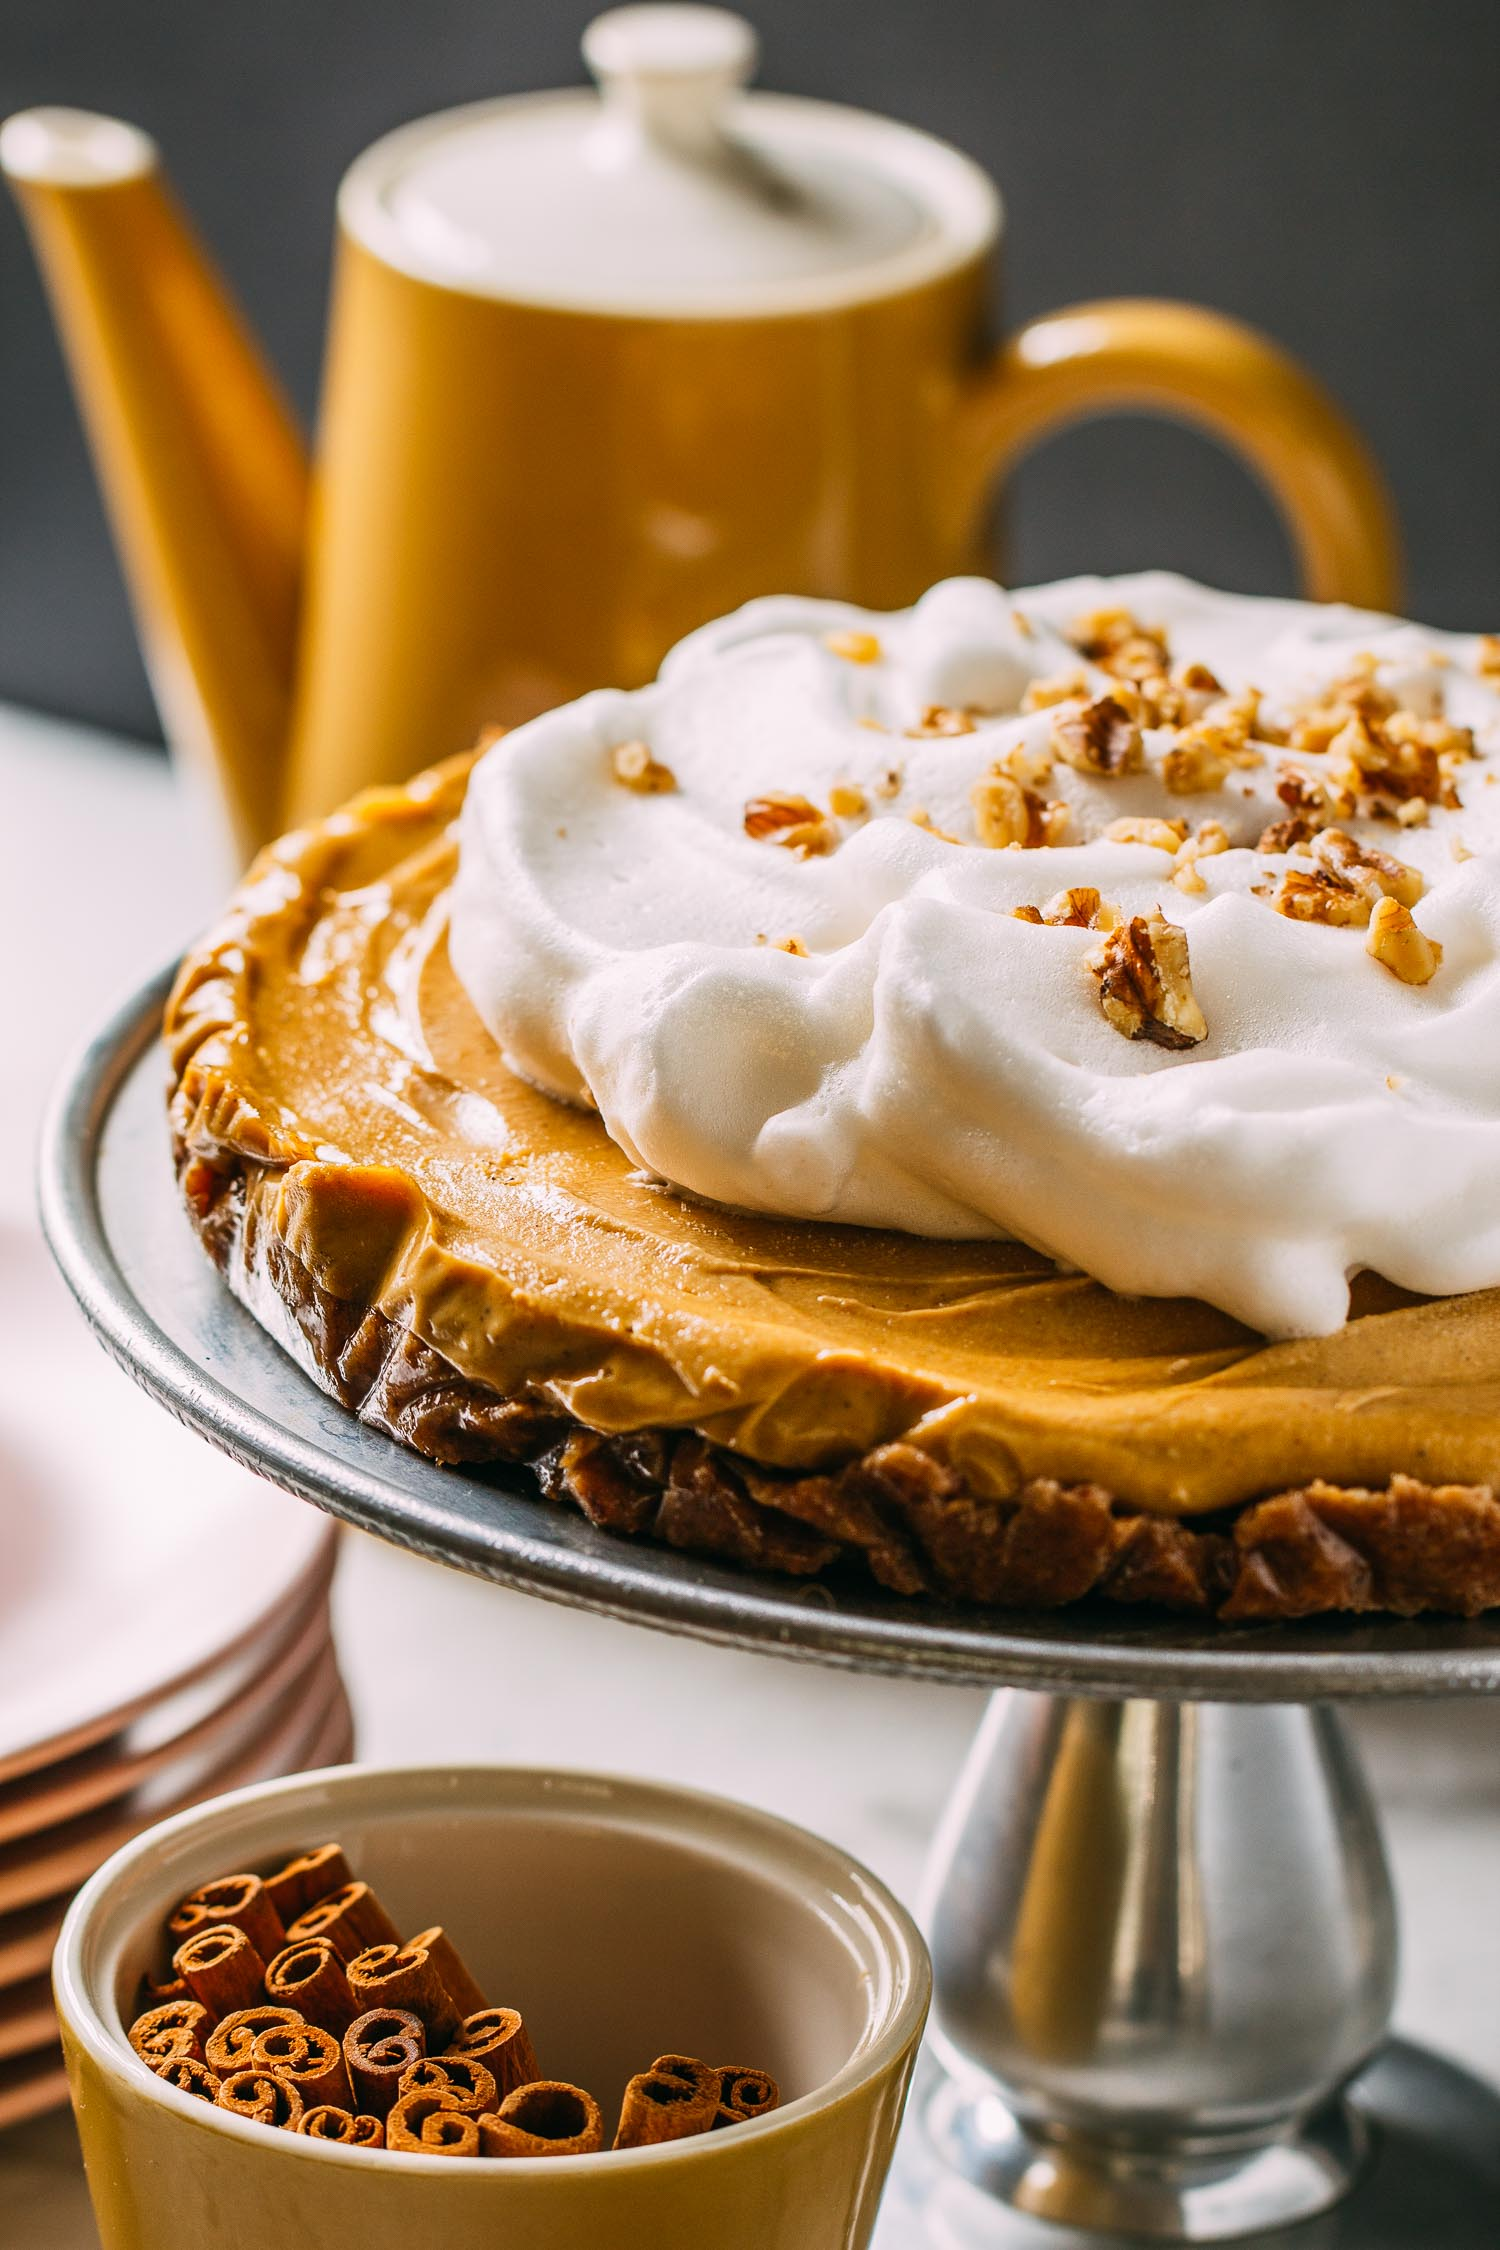 No-Bake Pumpkin Cheesecake with Aquafaba Whipped Cream #pumpkin #cheesecake #cashews #dates #walnuts #aquafaba #whipped cream #dairy-free #gluten-free #vegan #wfpb #wfpbno #refined sugar-free #dessert #recipe #recipes #no-bake #make-ahead #spice #Thanksgiving #Christmas #holidays #fall #winter #freezer #frozen #maple syrup #easy #Vitamix #blender